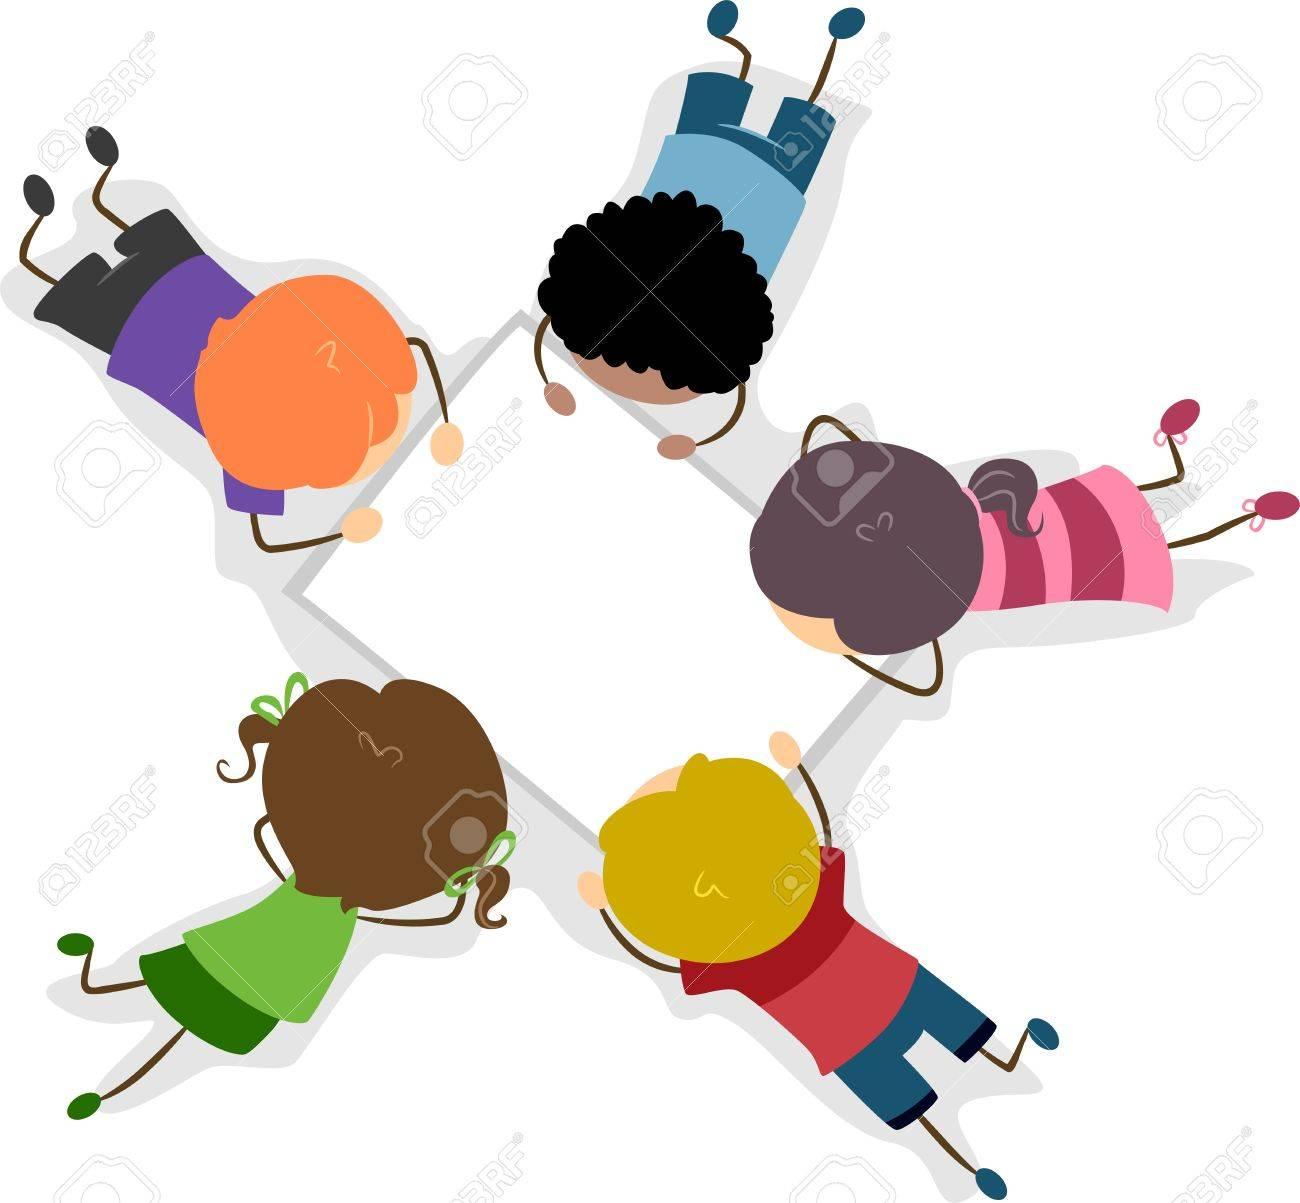 Illustration of Kids Looking at a Blank Piece of Paper Stock Photo - 10132533